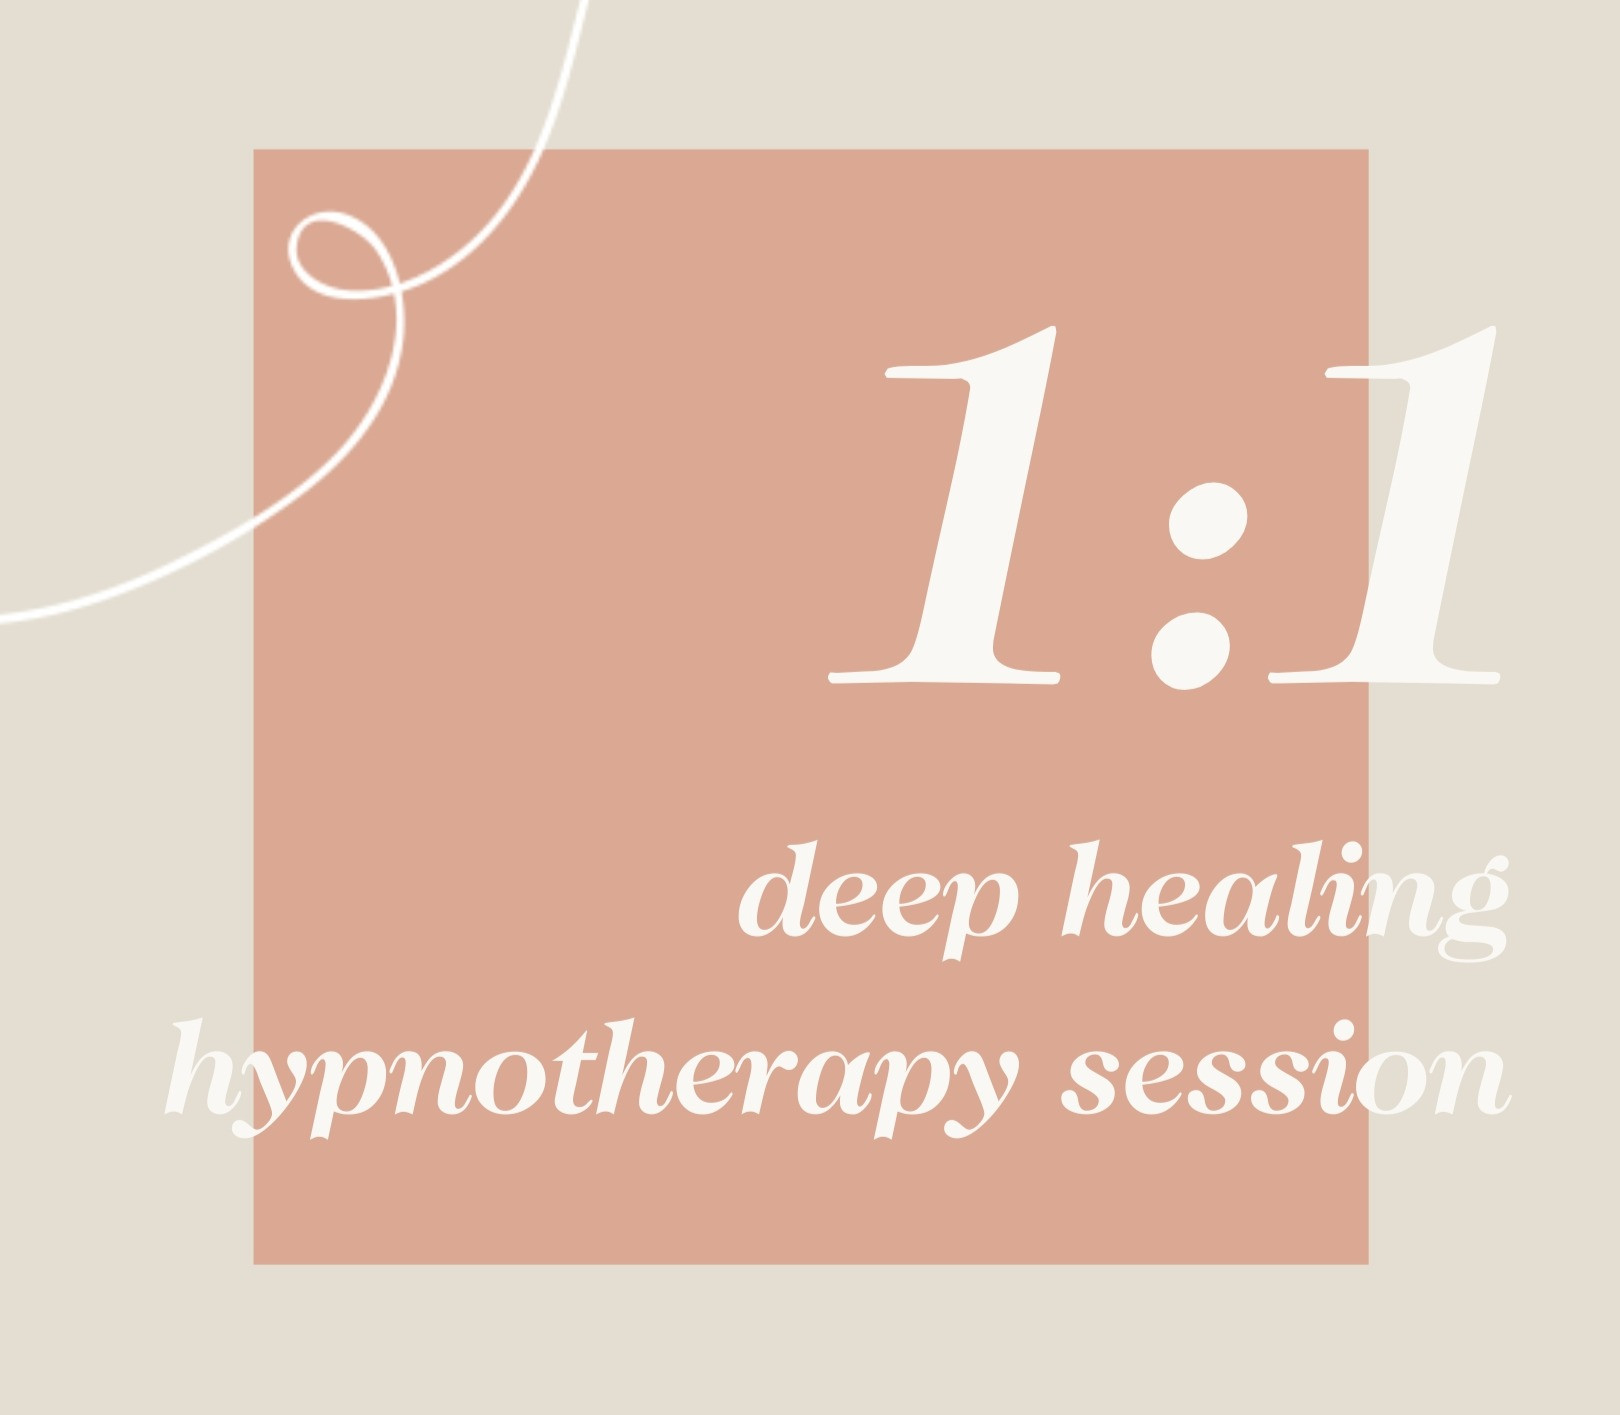 1:1 Deep Healing Hypnotherapy Sessions